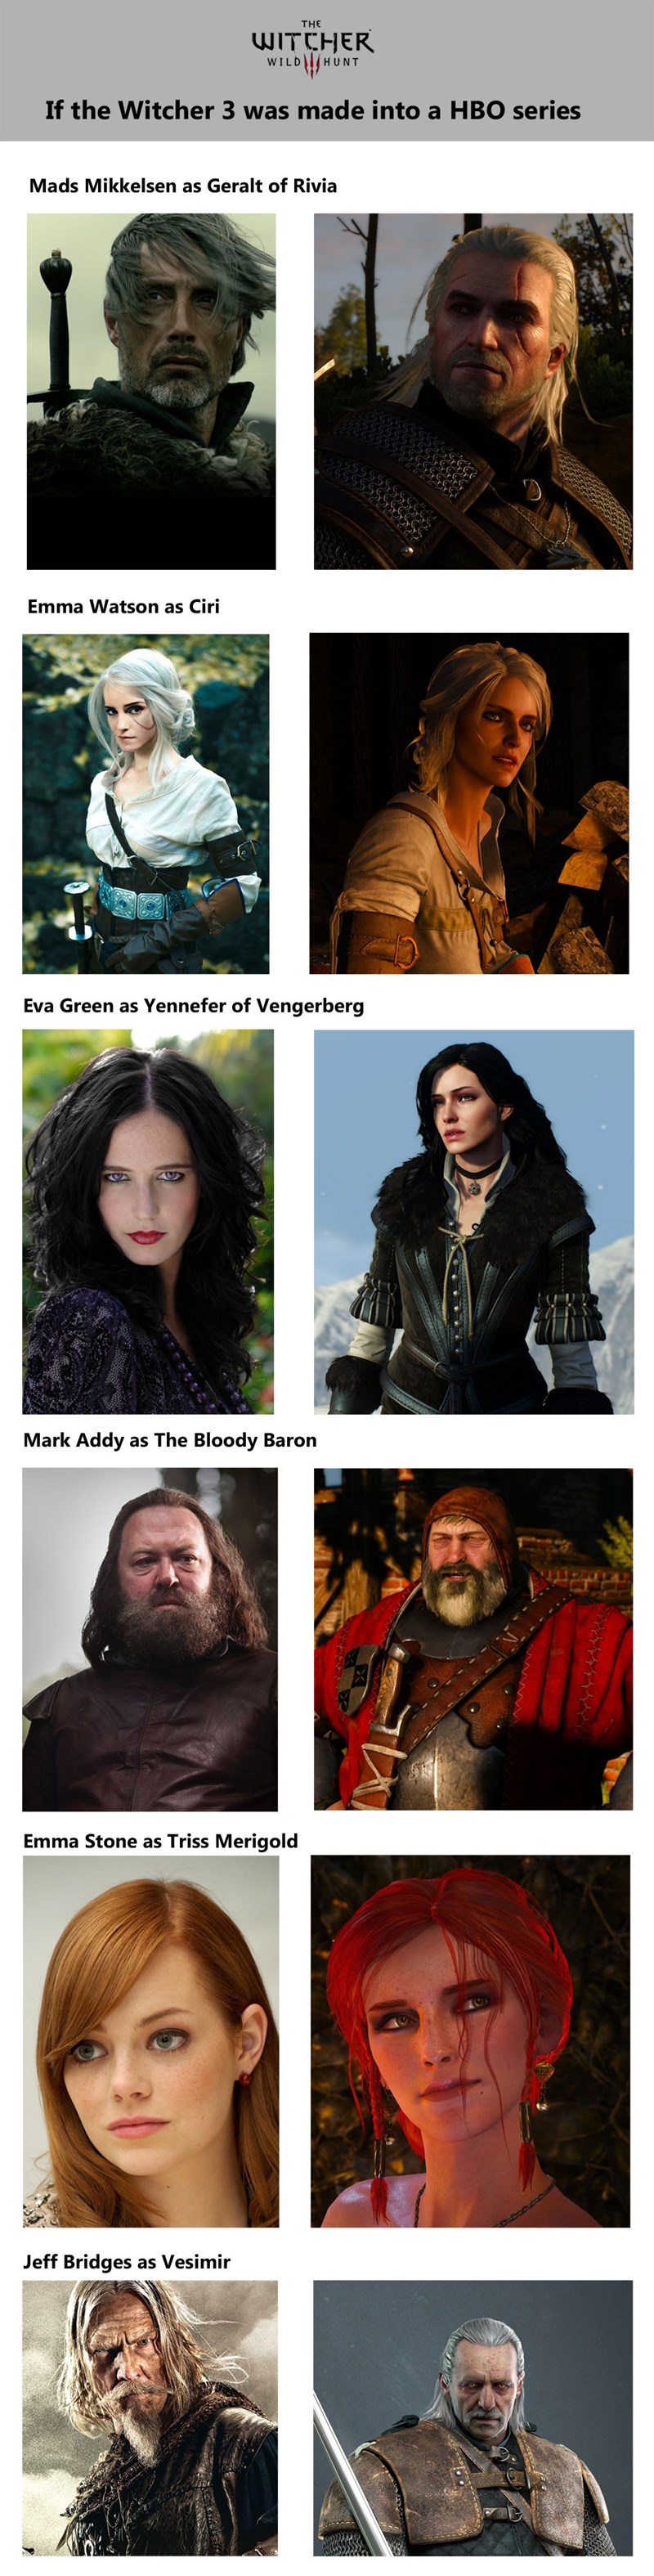 hbo dream casting witcher 3 series